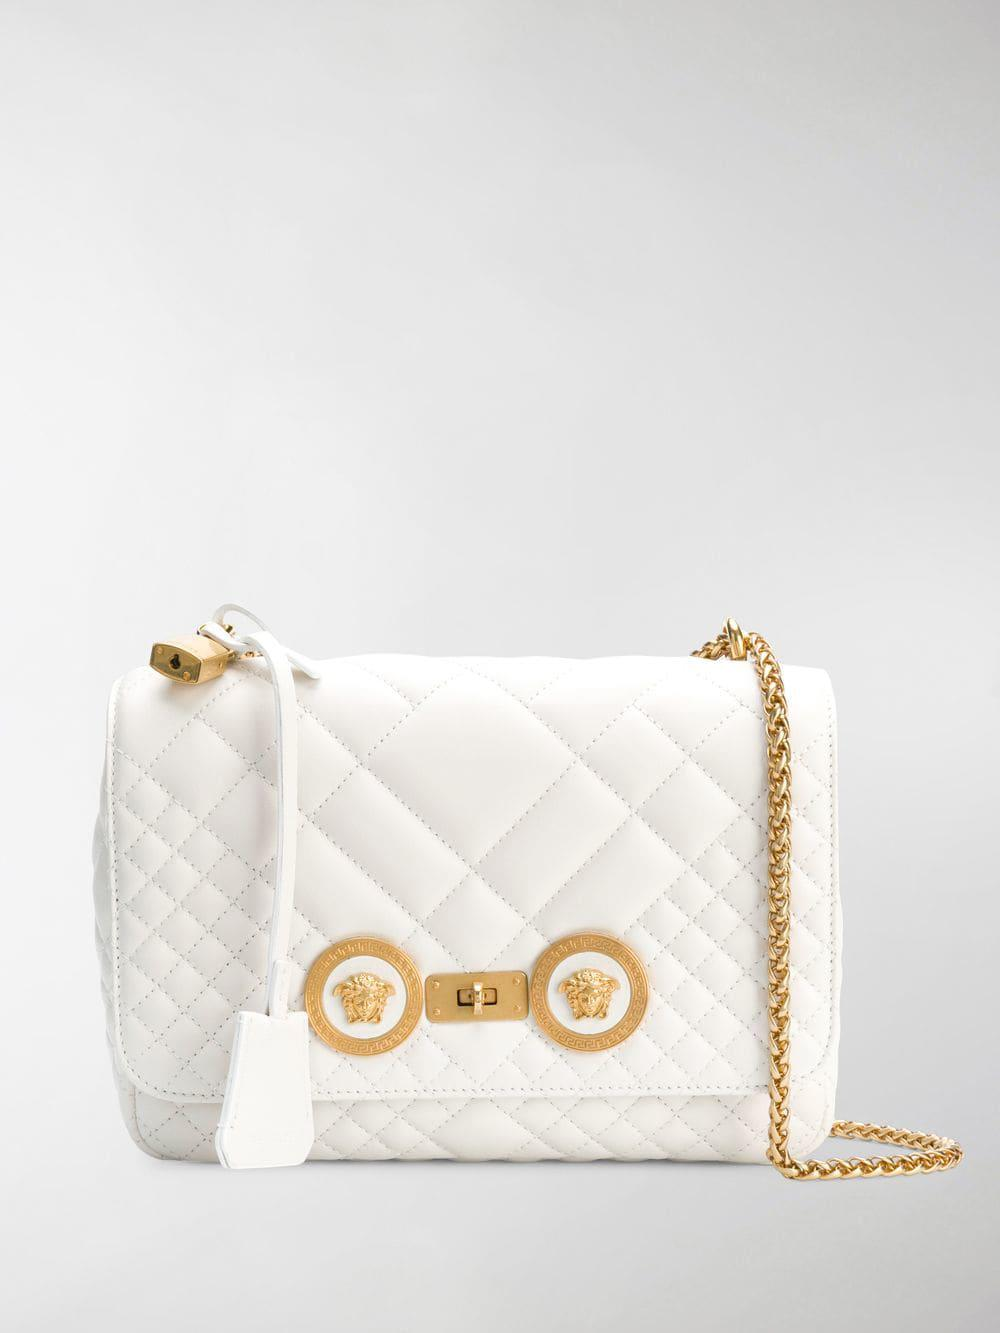 7d67422d663f Lyst - Versace White Quilted Chain Shoulder Bag in White